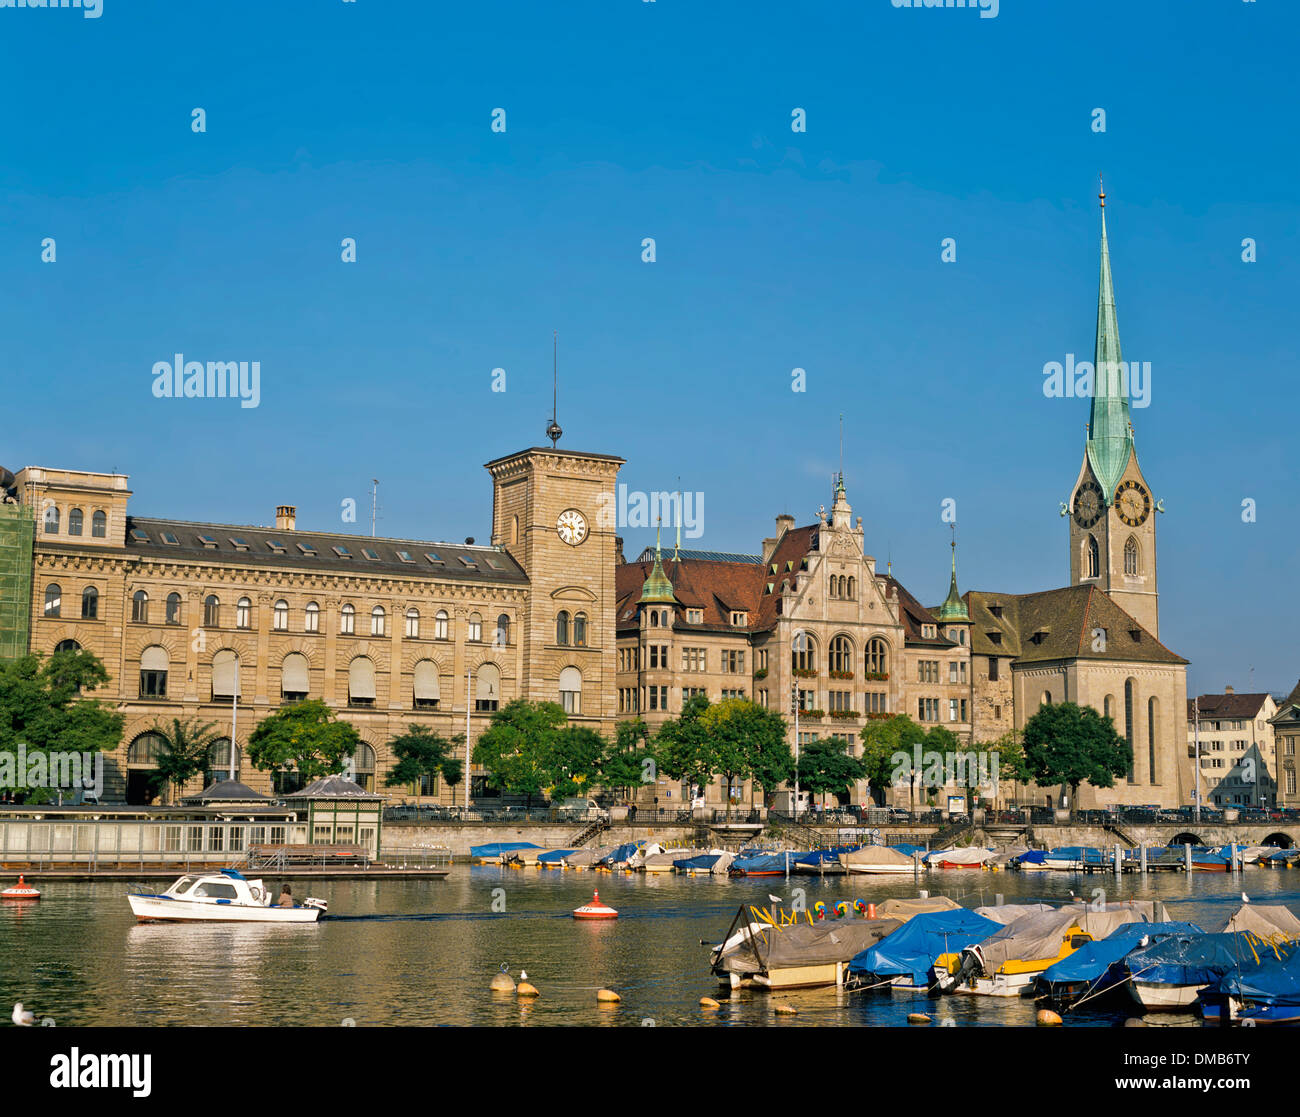 View of City Hall across River Limmat, Zurich, Switzerland - Stock Image